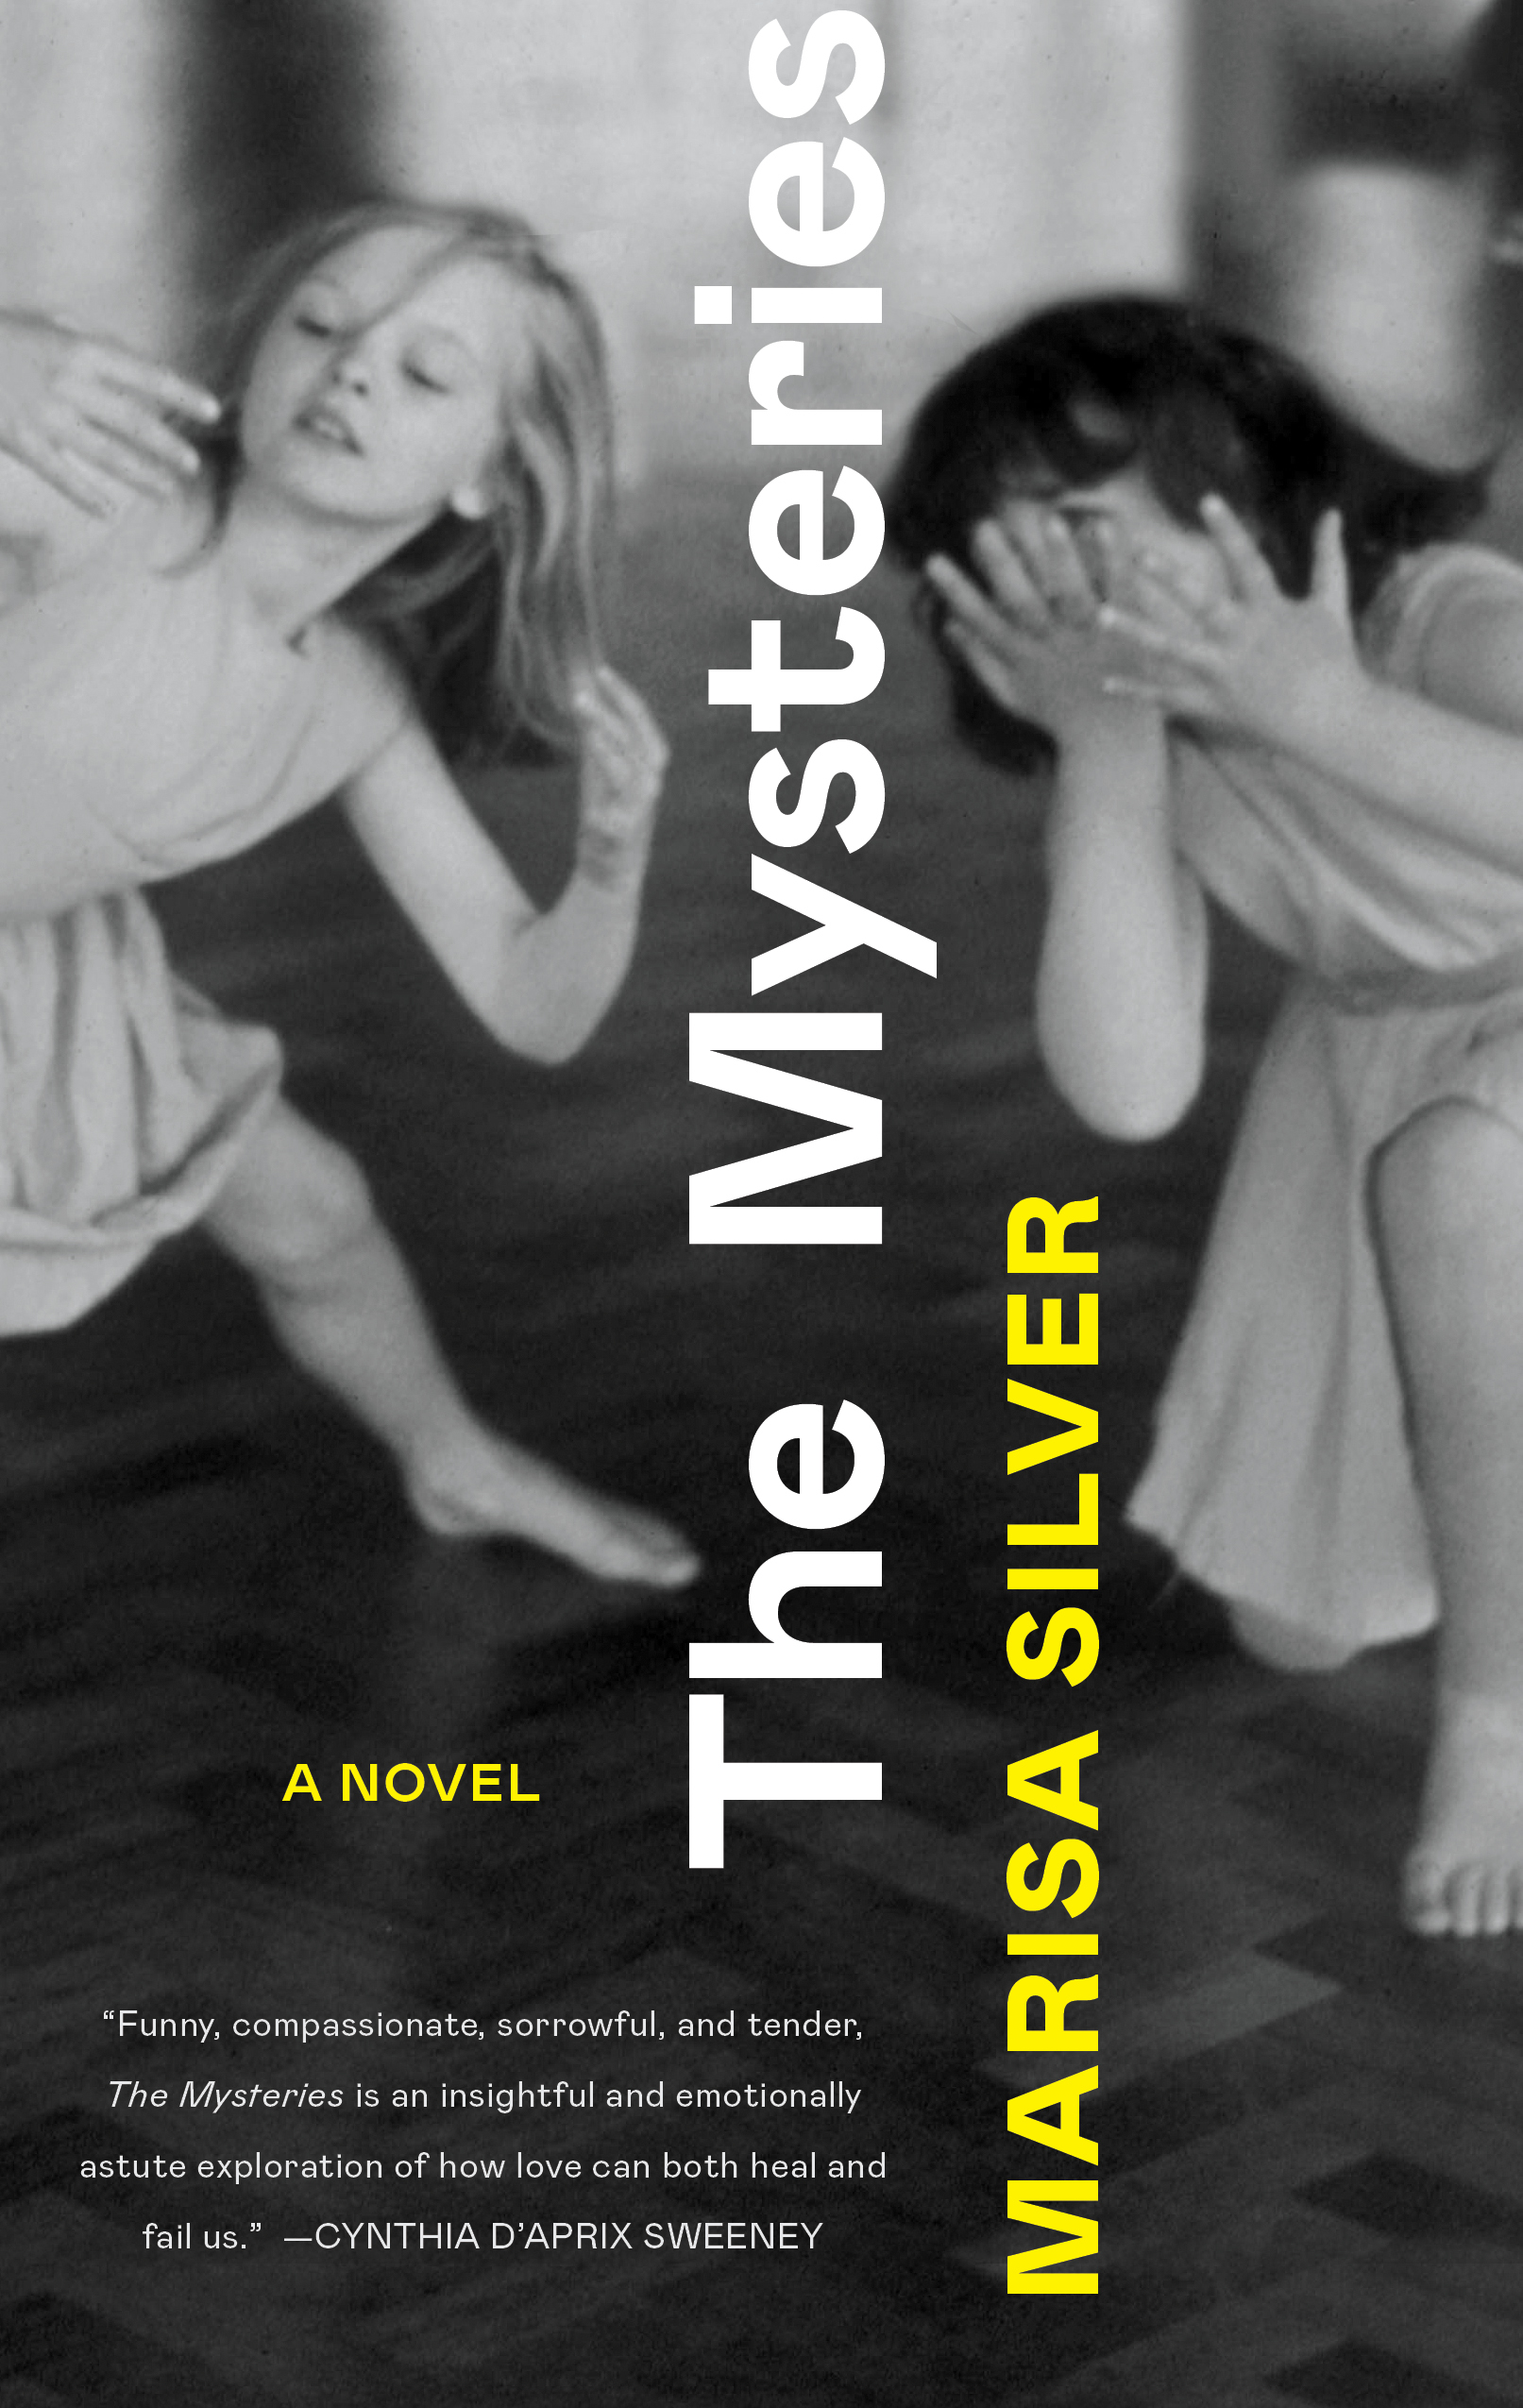 Book cover for The Mysteries